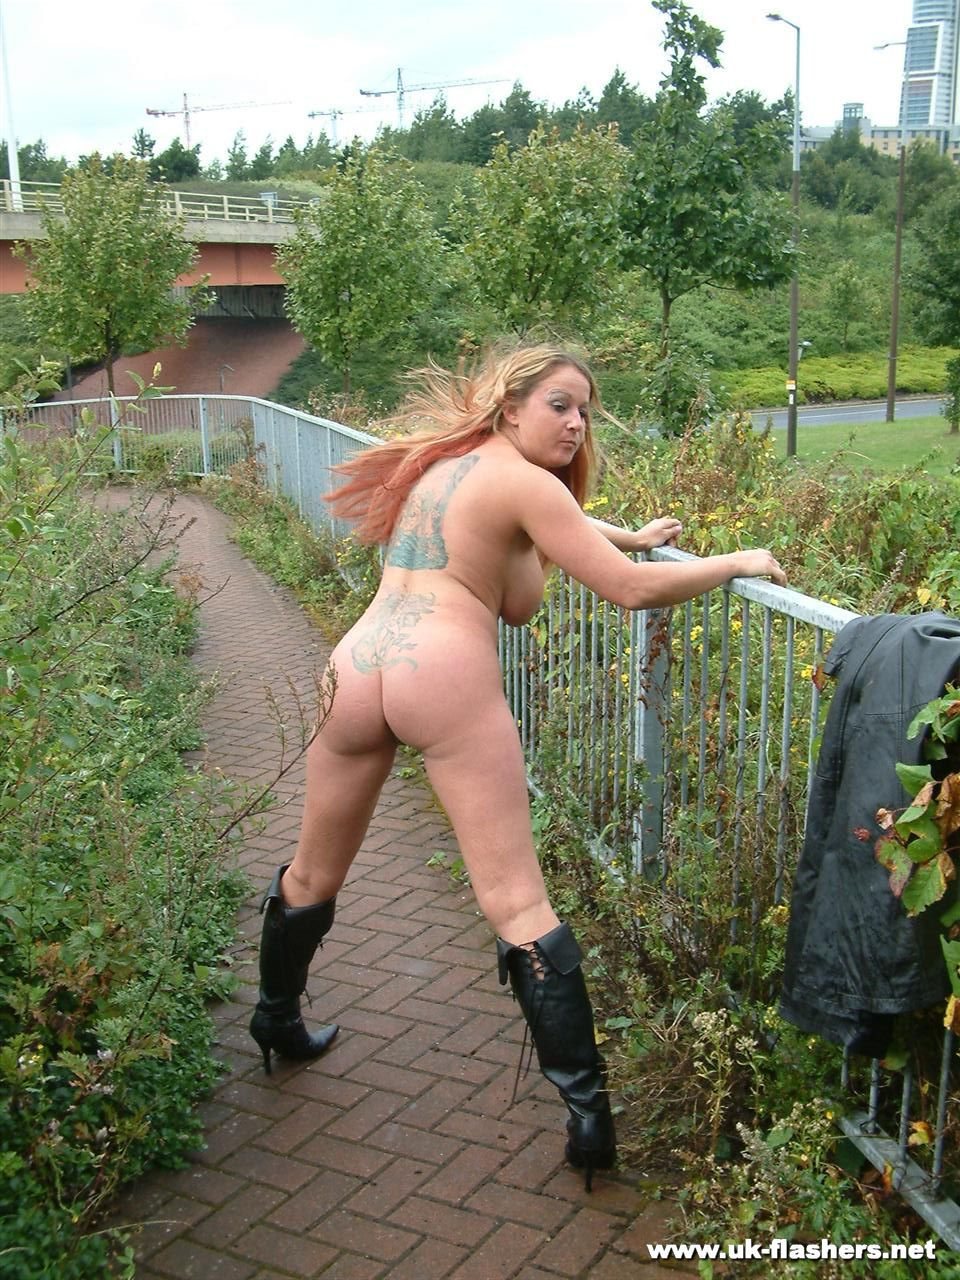 Busty amateur milf nude outdoors congratulate